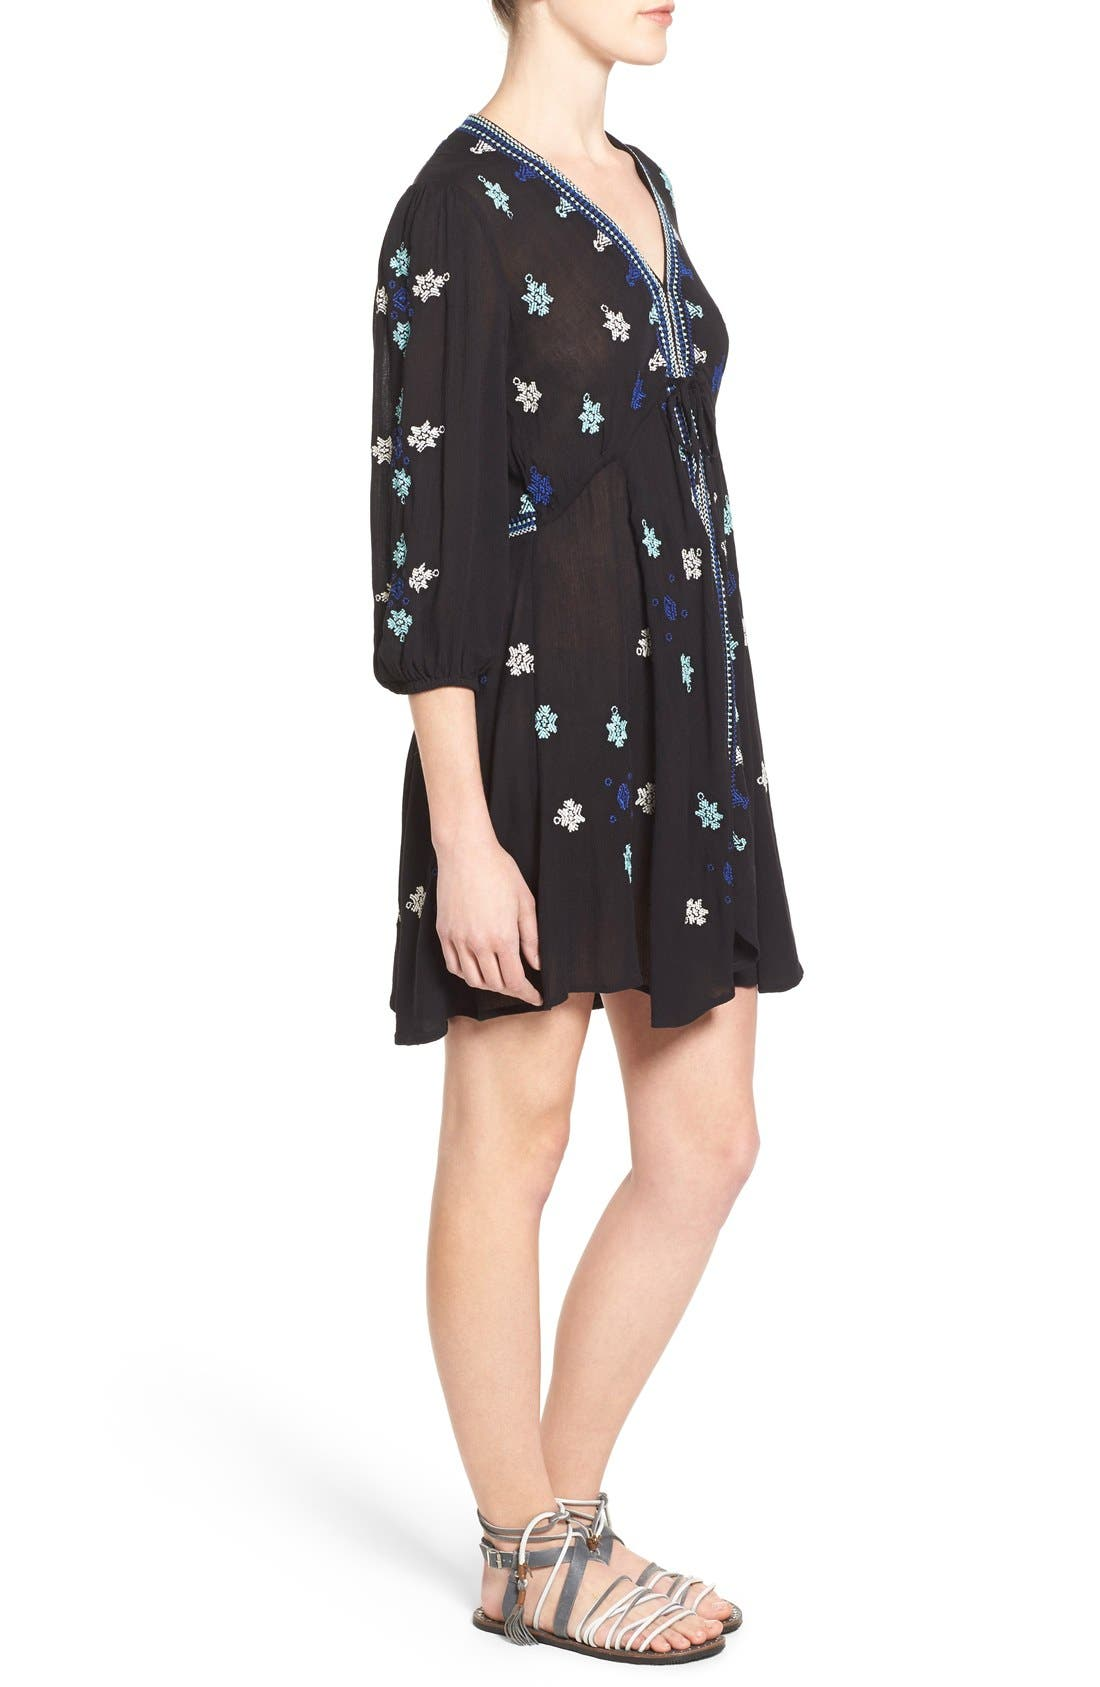 'Star Gazer' Embroidered Tunic Dress,                             Alternate thumbnail 6, color,                             001